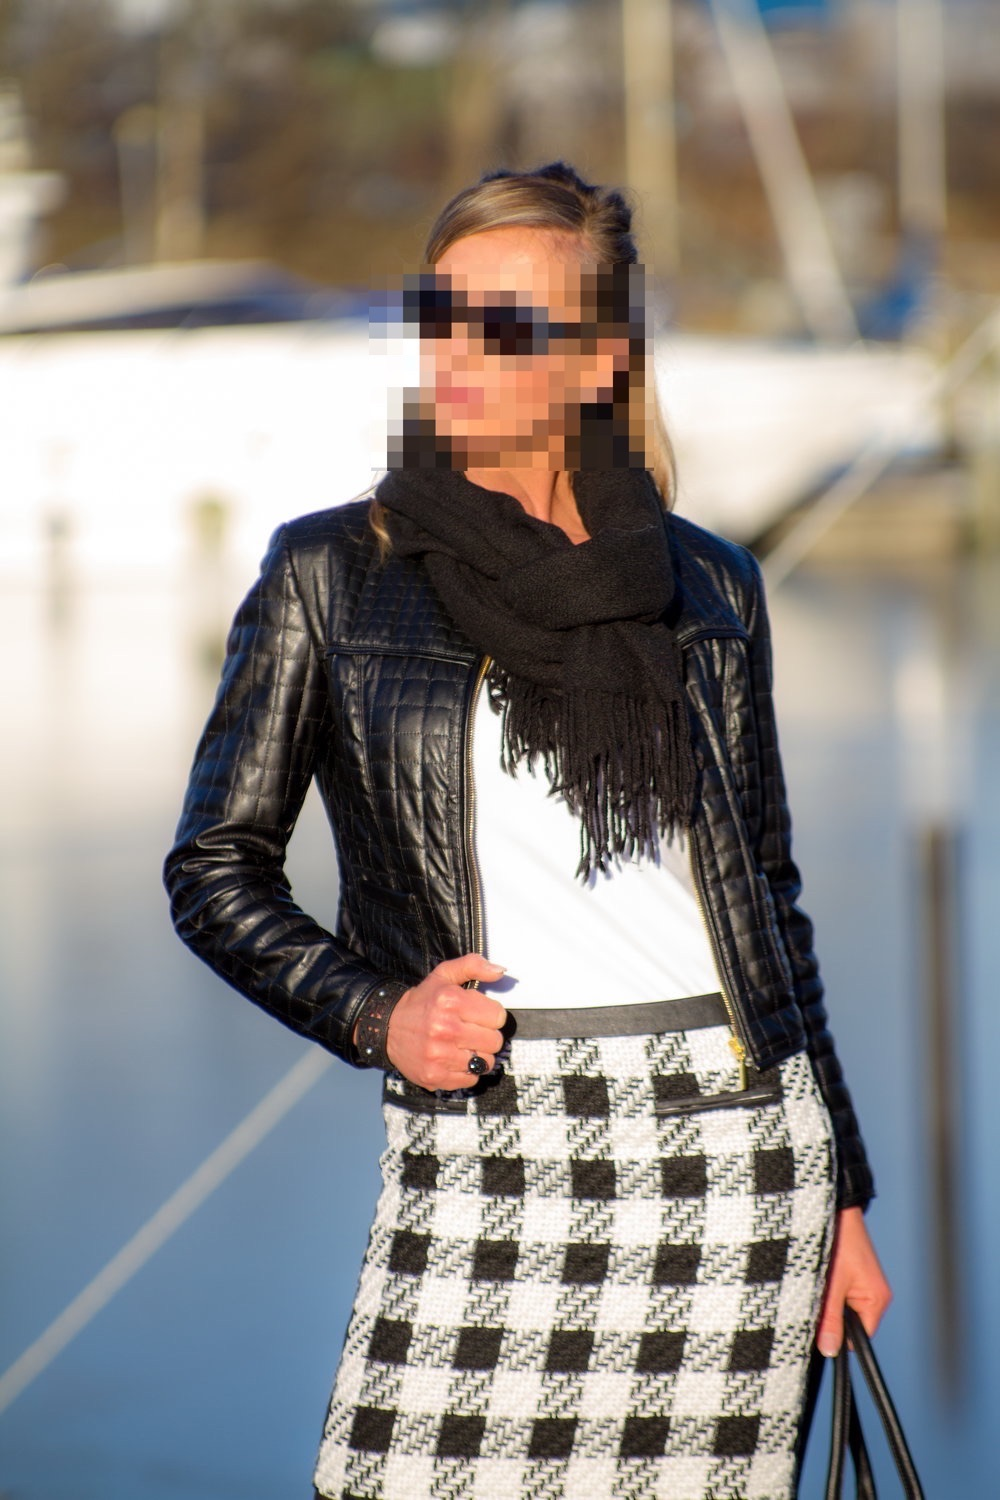 escort-flensburg-lady-madeleine-perfect-date-escort-001-2.jpg